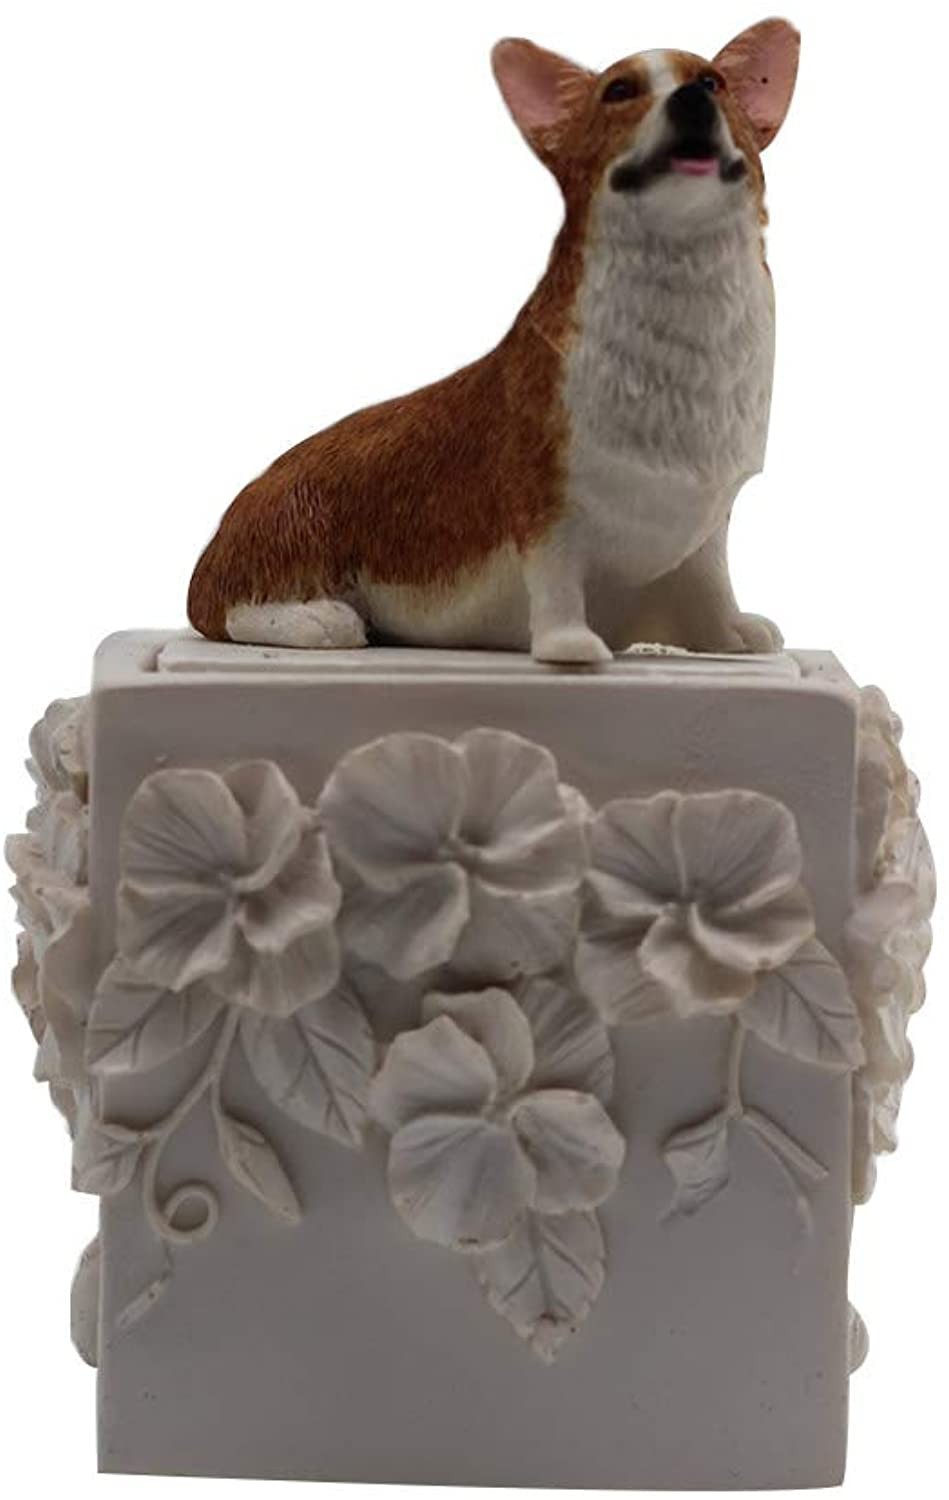 Yuxinjewelry Pet Memorial Urn Corgi Dog Pattern Ashes Cremation keepsake Cold Cast Resin Urns Personalizzabile